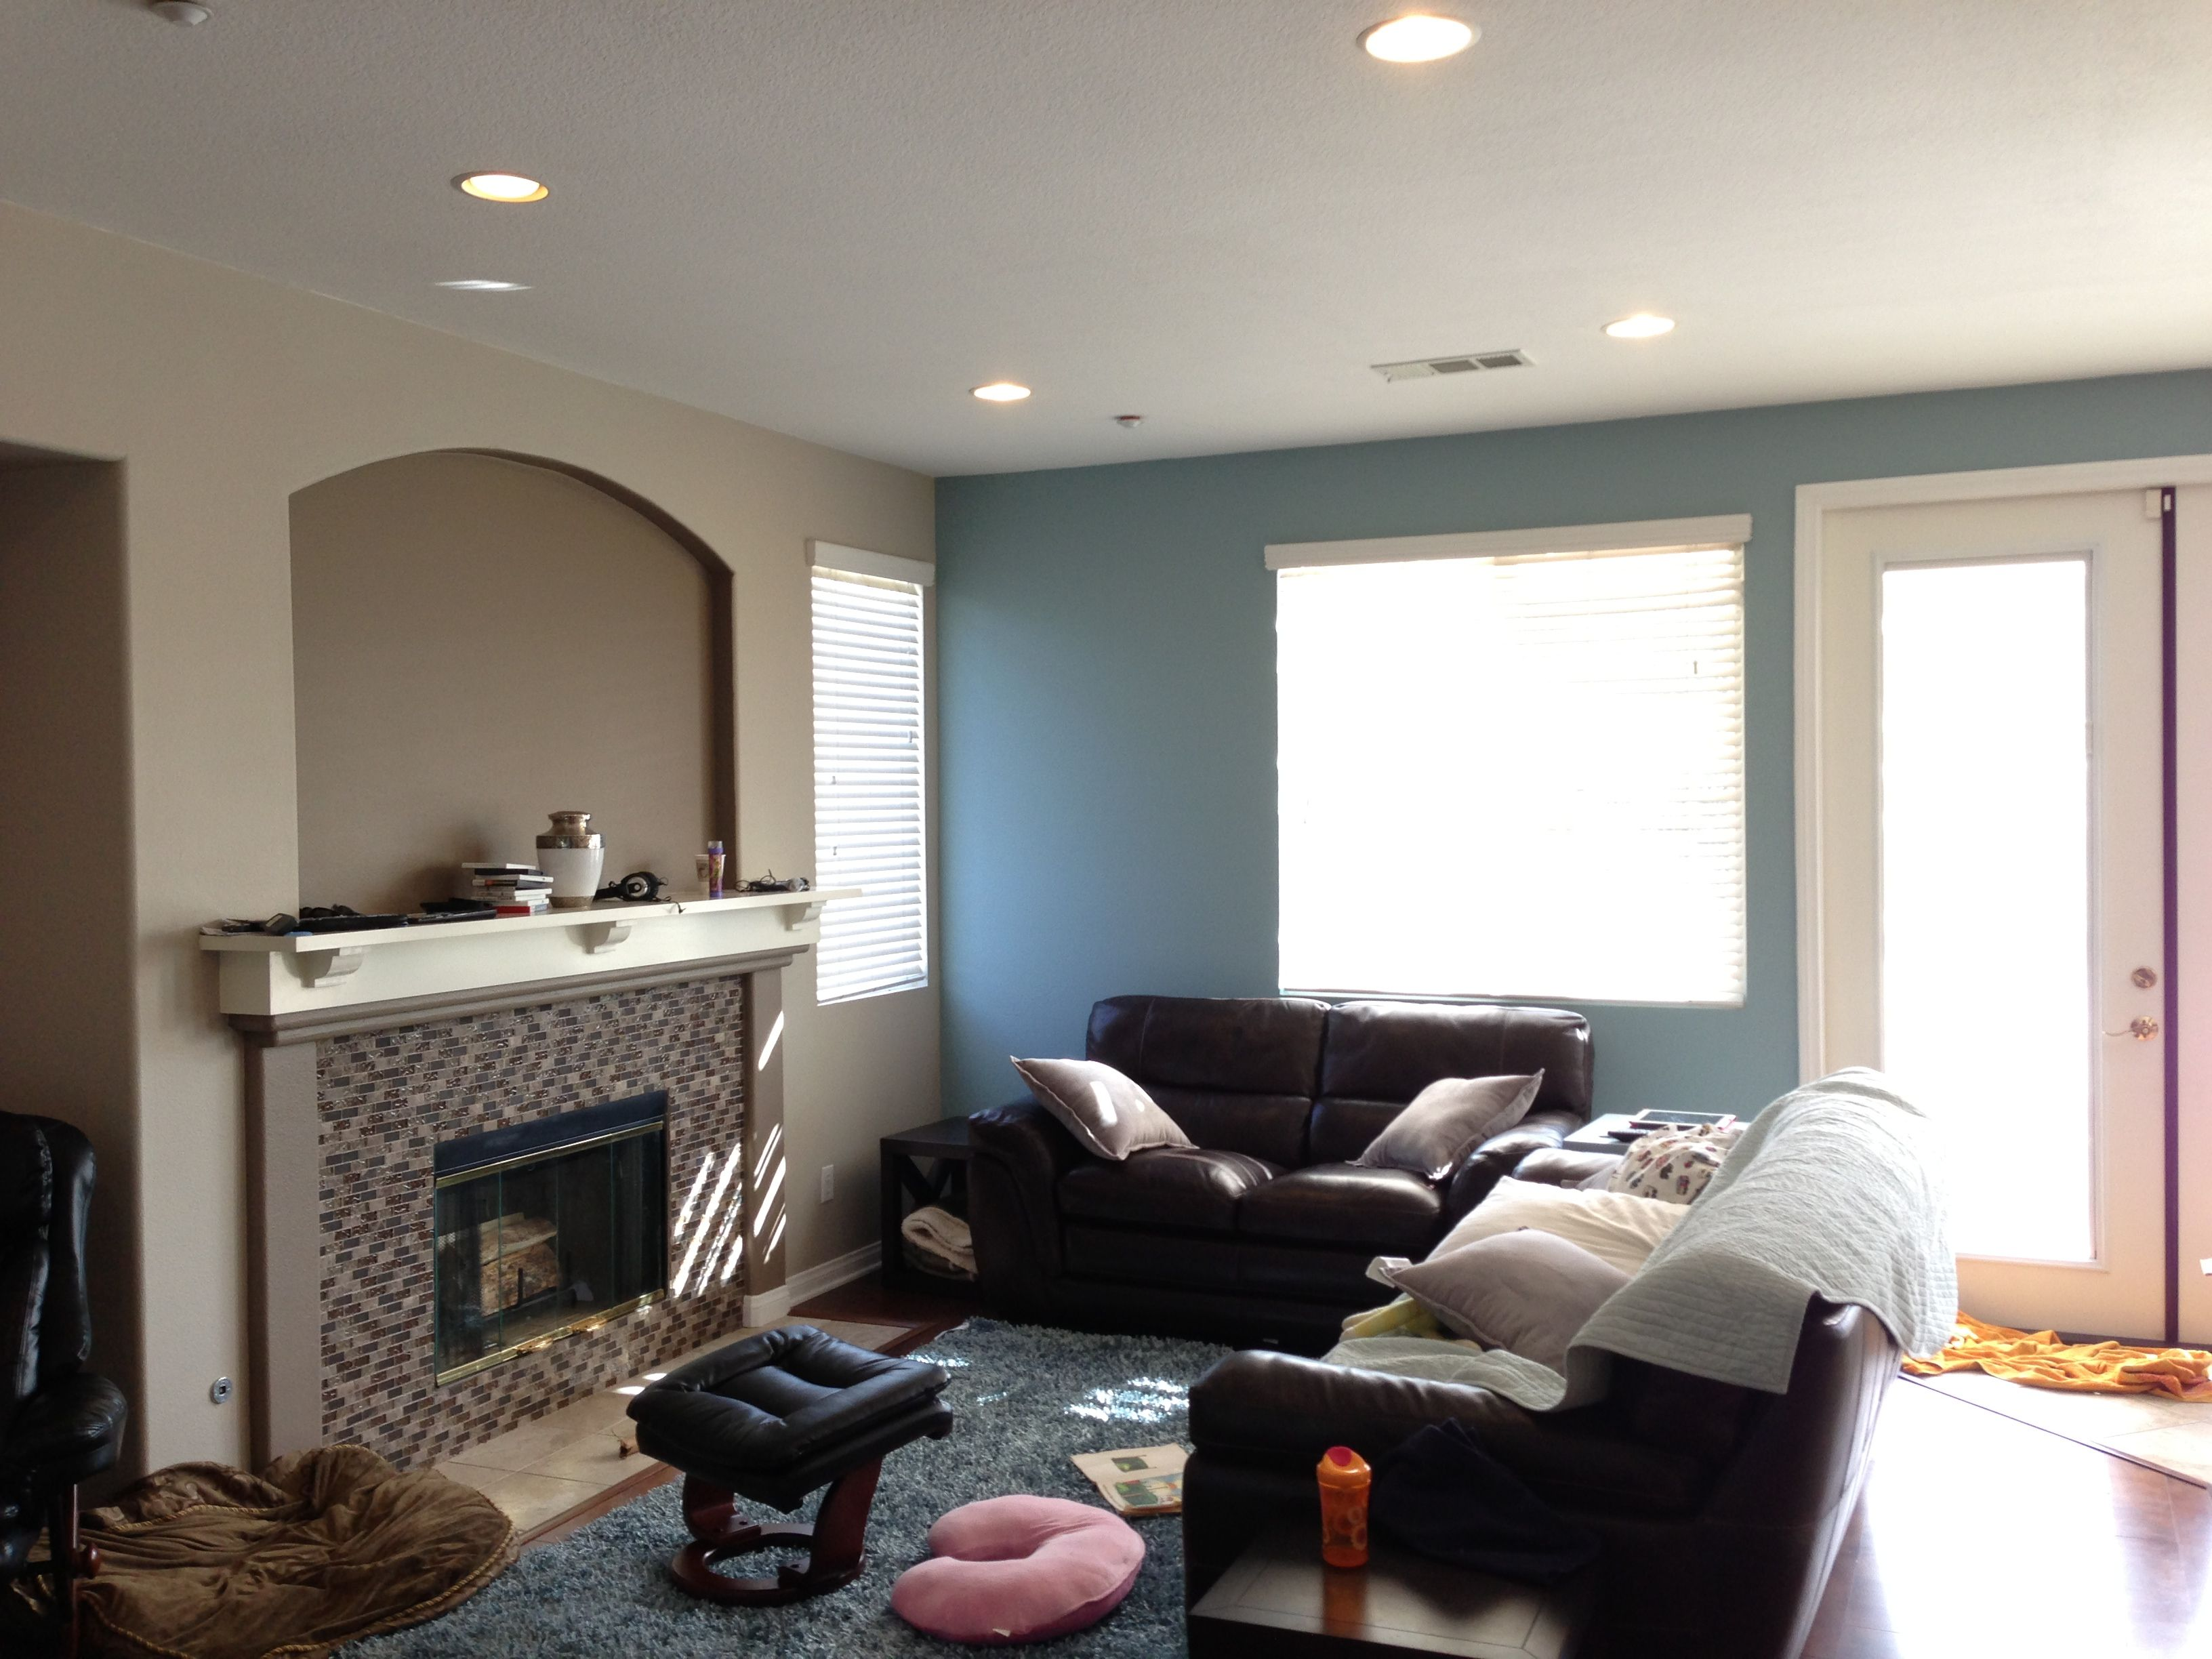 Benjamin moore paints revere pewter flagstone colorado blue perfect with the dark brown leather couches